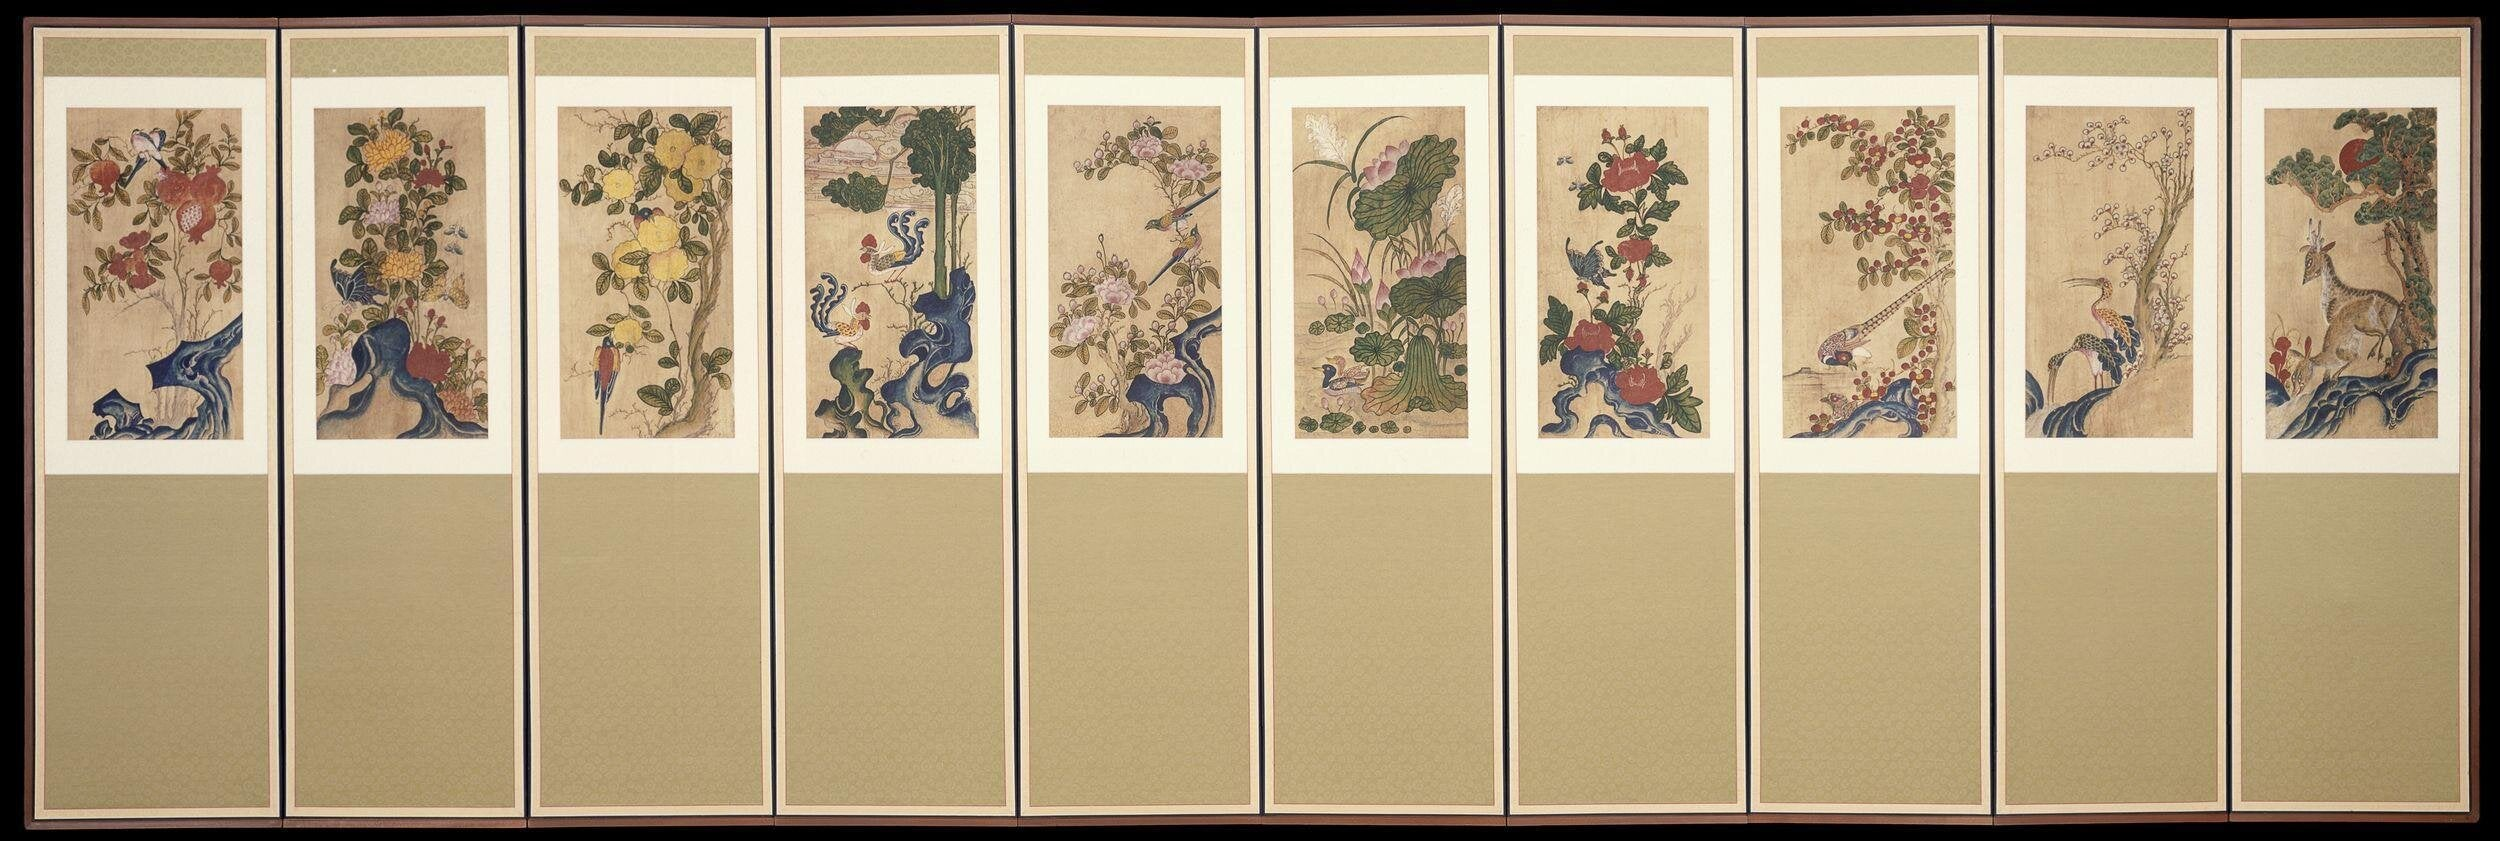 Flower and Bird Screen (Hwajodo Byeongpung), 화조도 병풍